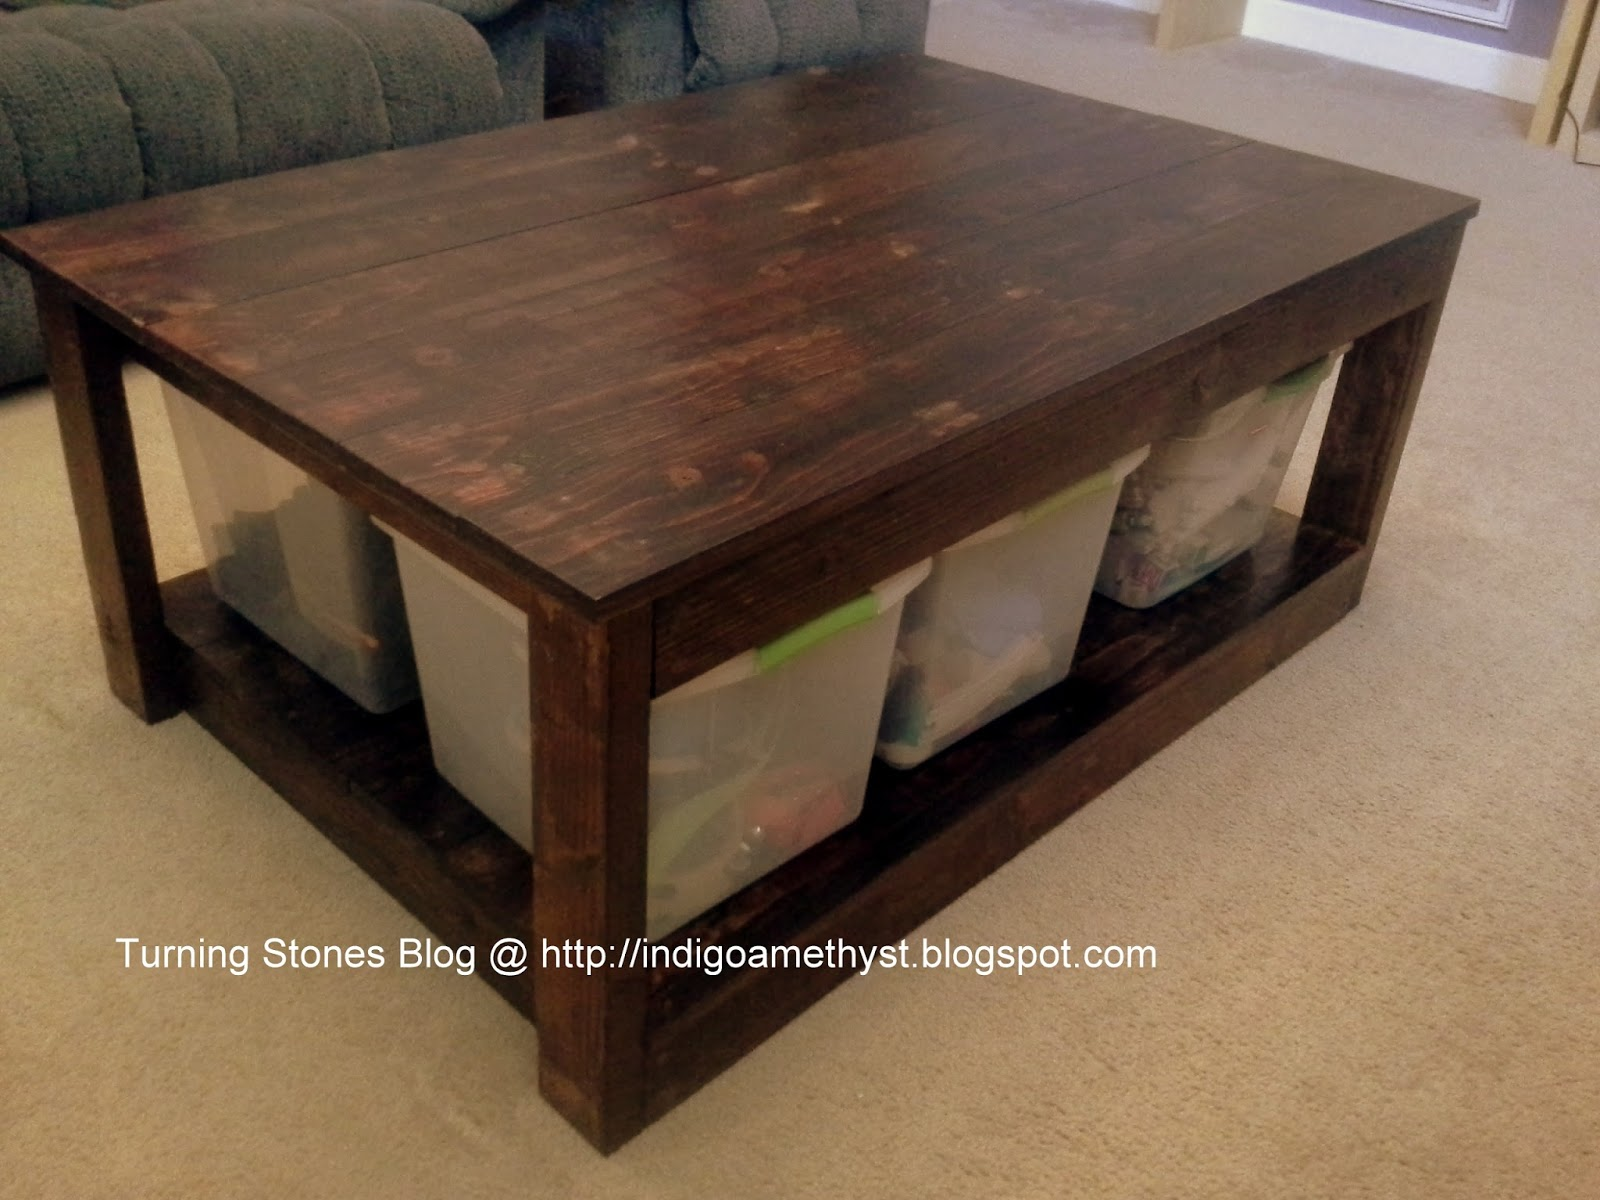 Homemade coffee table plans pdf woodworking Homemade coffee table plans